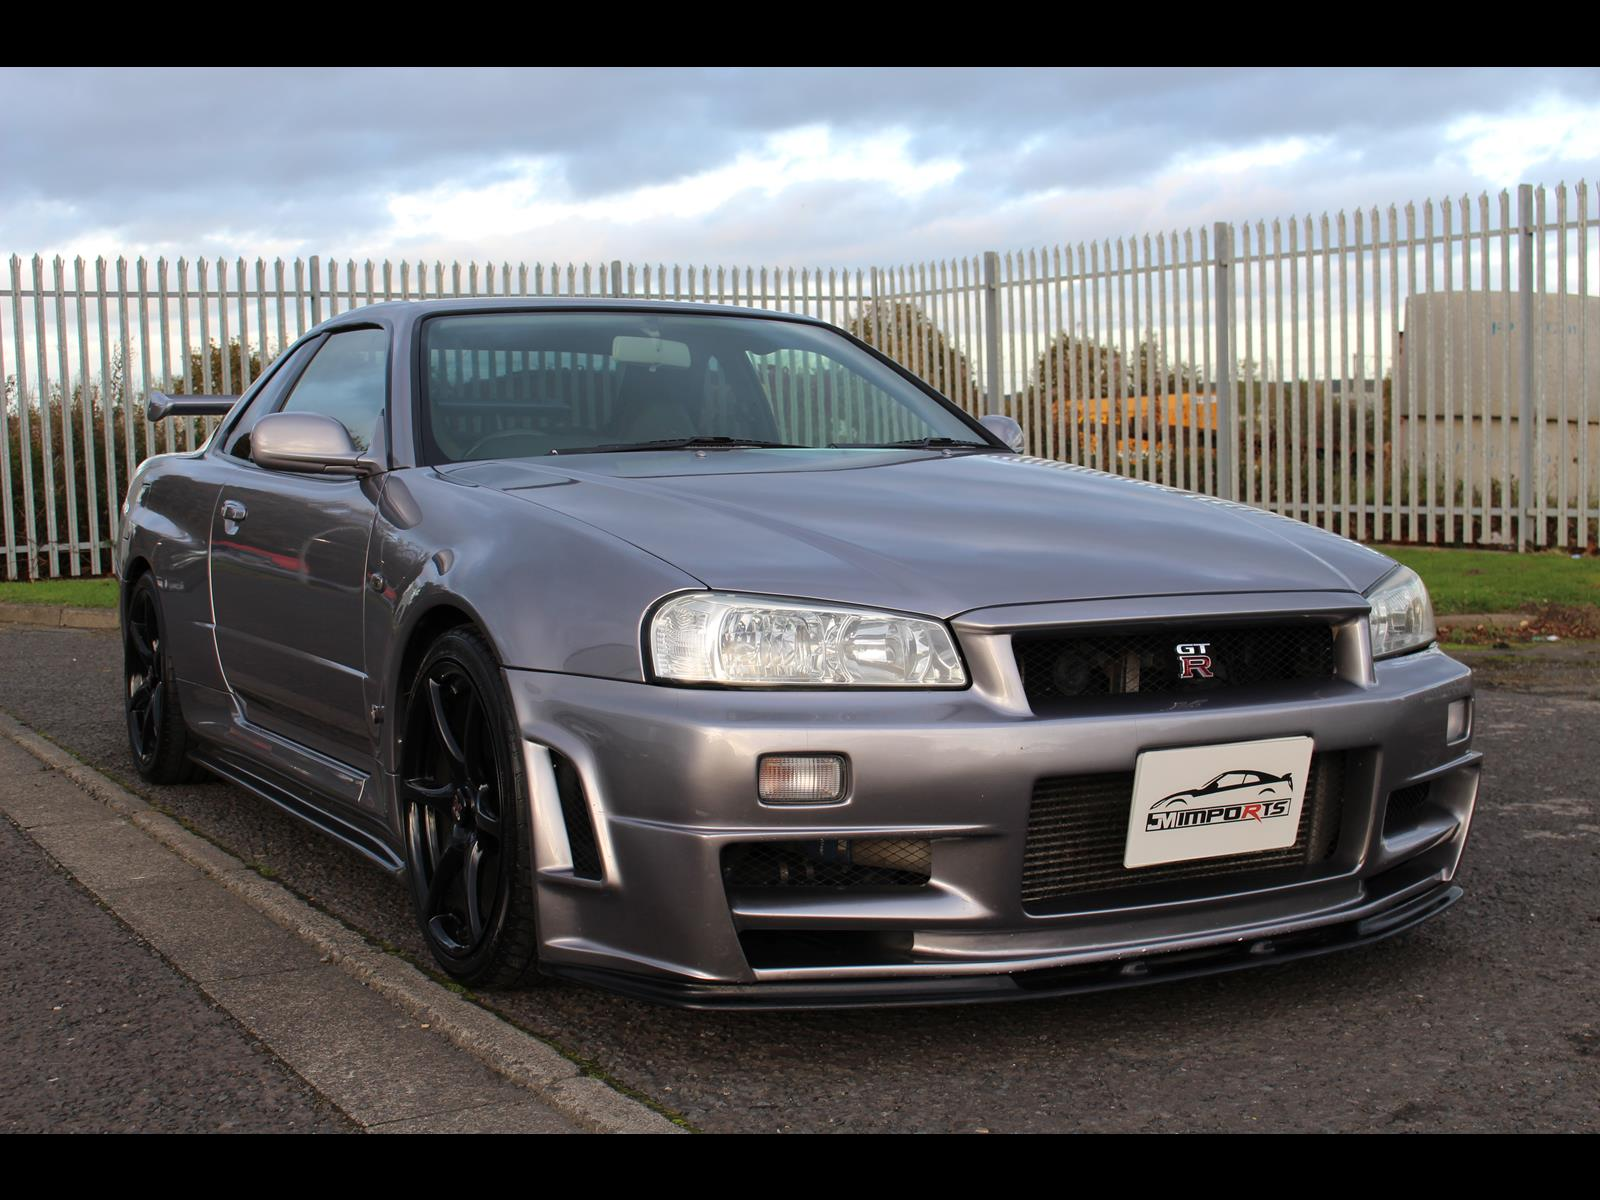 2002 nissan skyline r34 gtr v spec 650 bhp uk model number 63. Black Bedroom Furniture Sets. Home Design Ideas